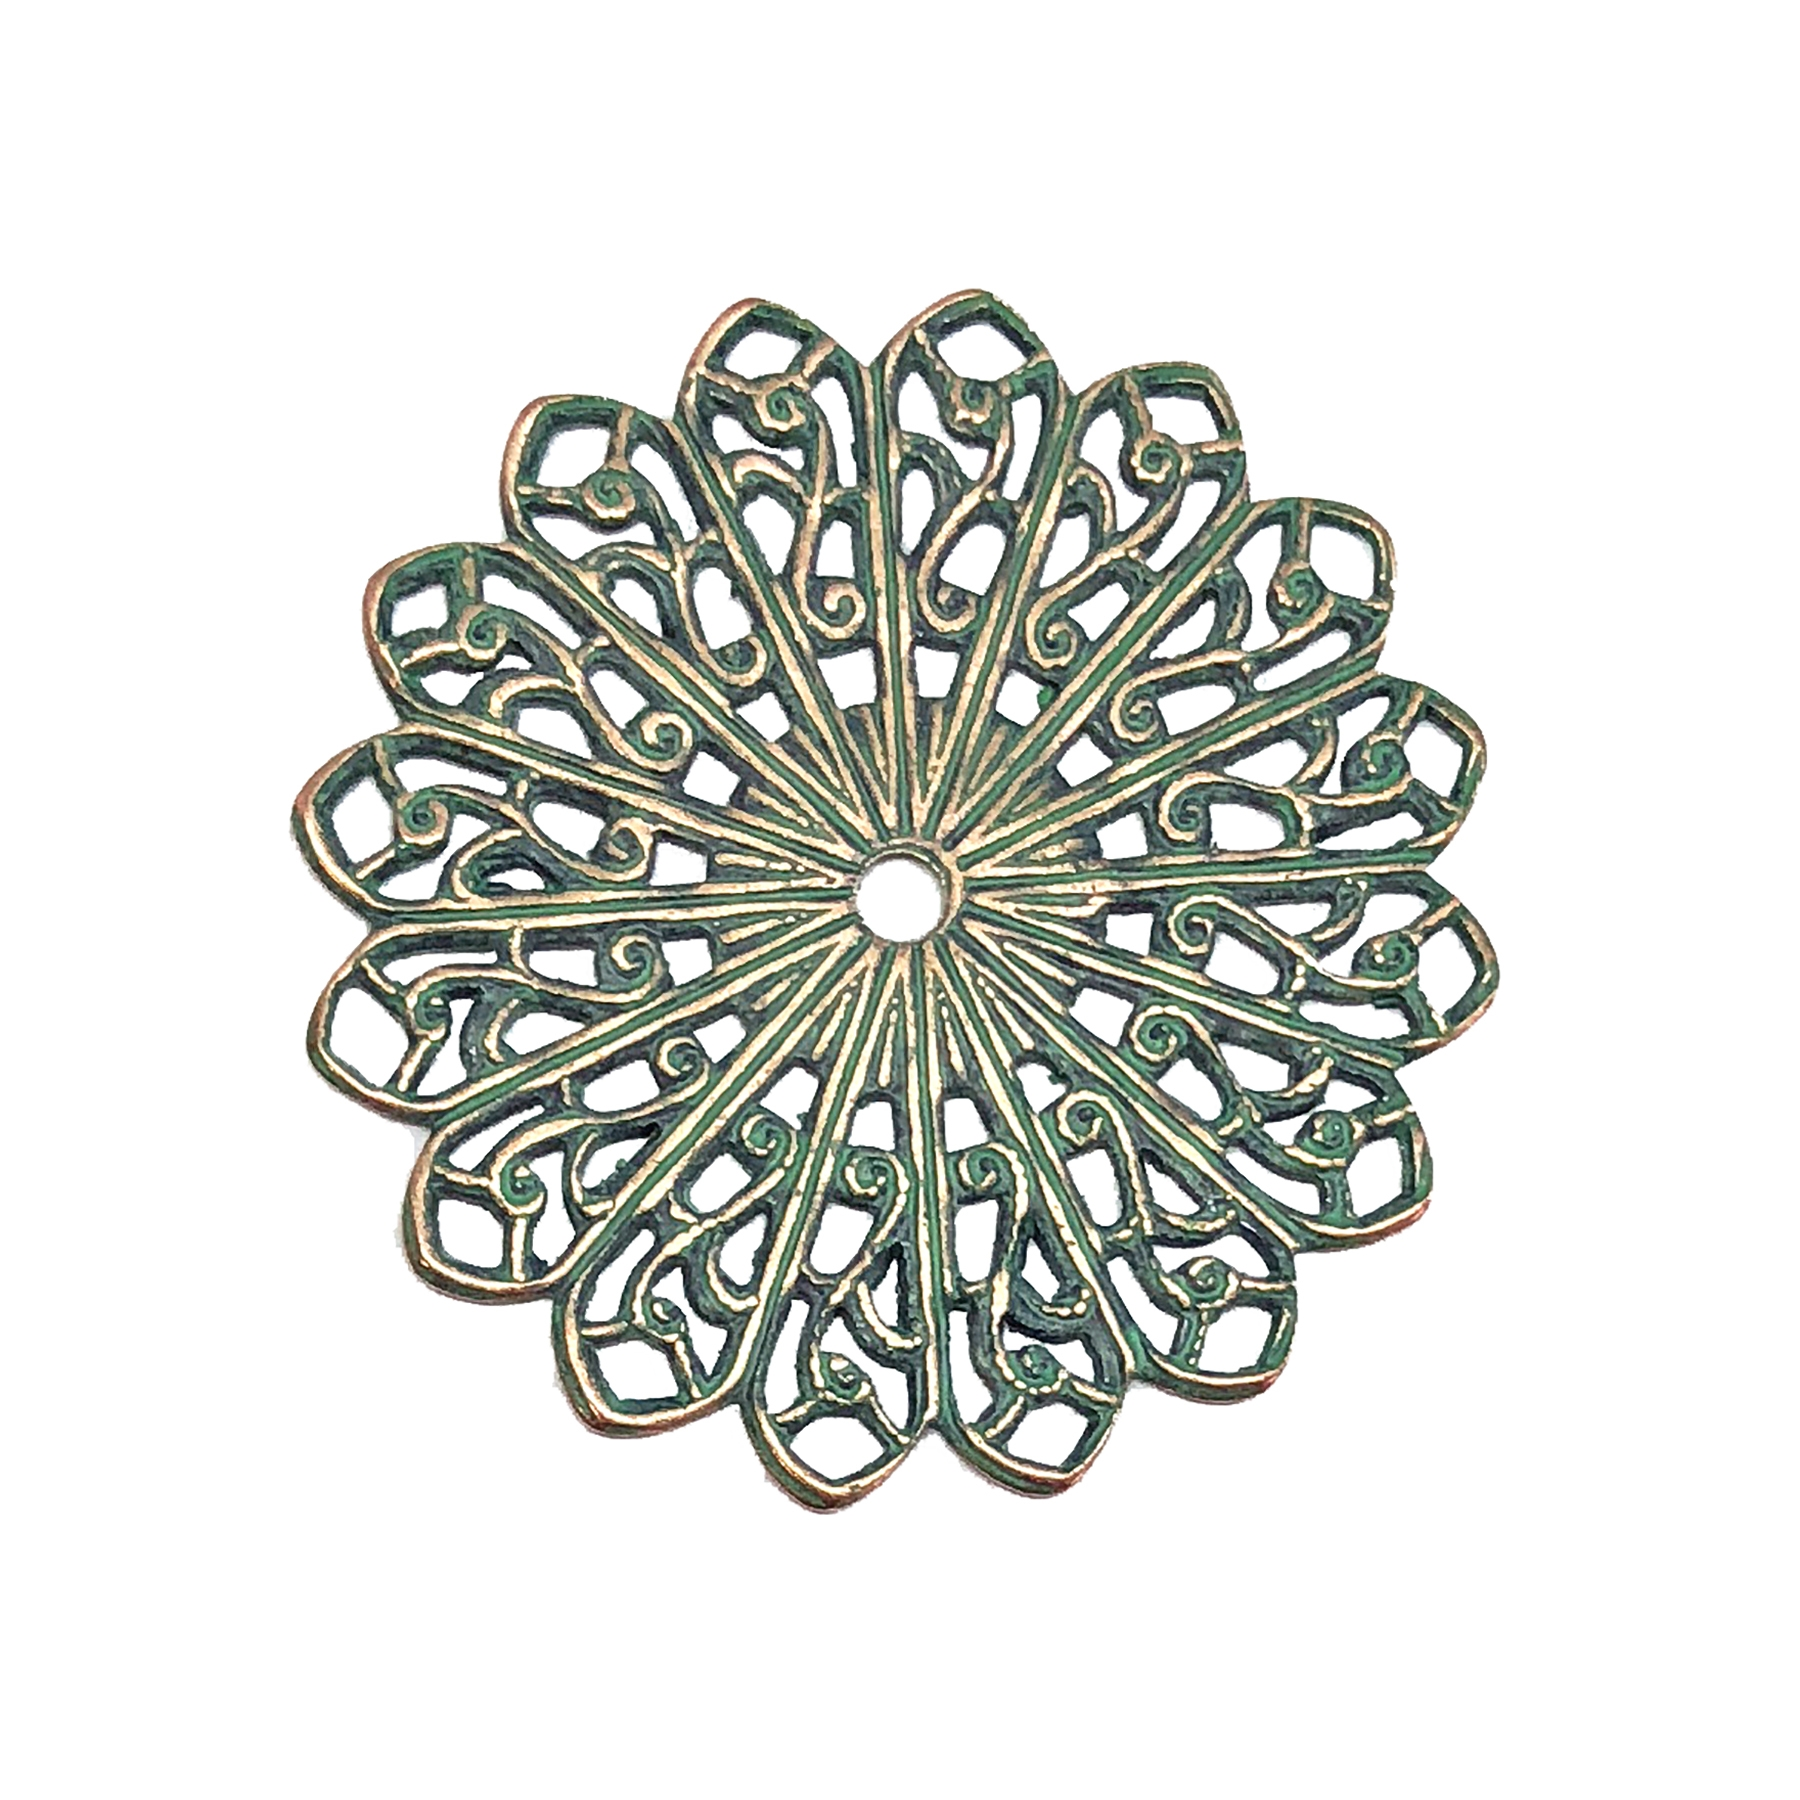 pinwheel style filigree, brass filigree, pinwheel style, aqua copper patina, vintage supplies, jewelry making, beading supplies, brass findings, jewelry findings, US made, jewelry supplies, B'sue Boutiques, 34mm, pinwheel, filigree, wiring filigree, 08672